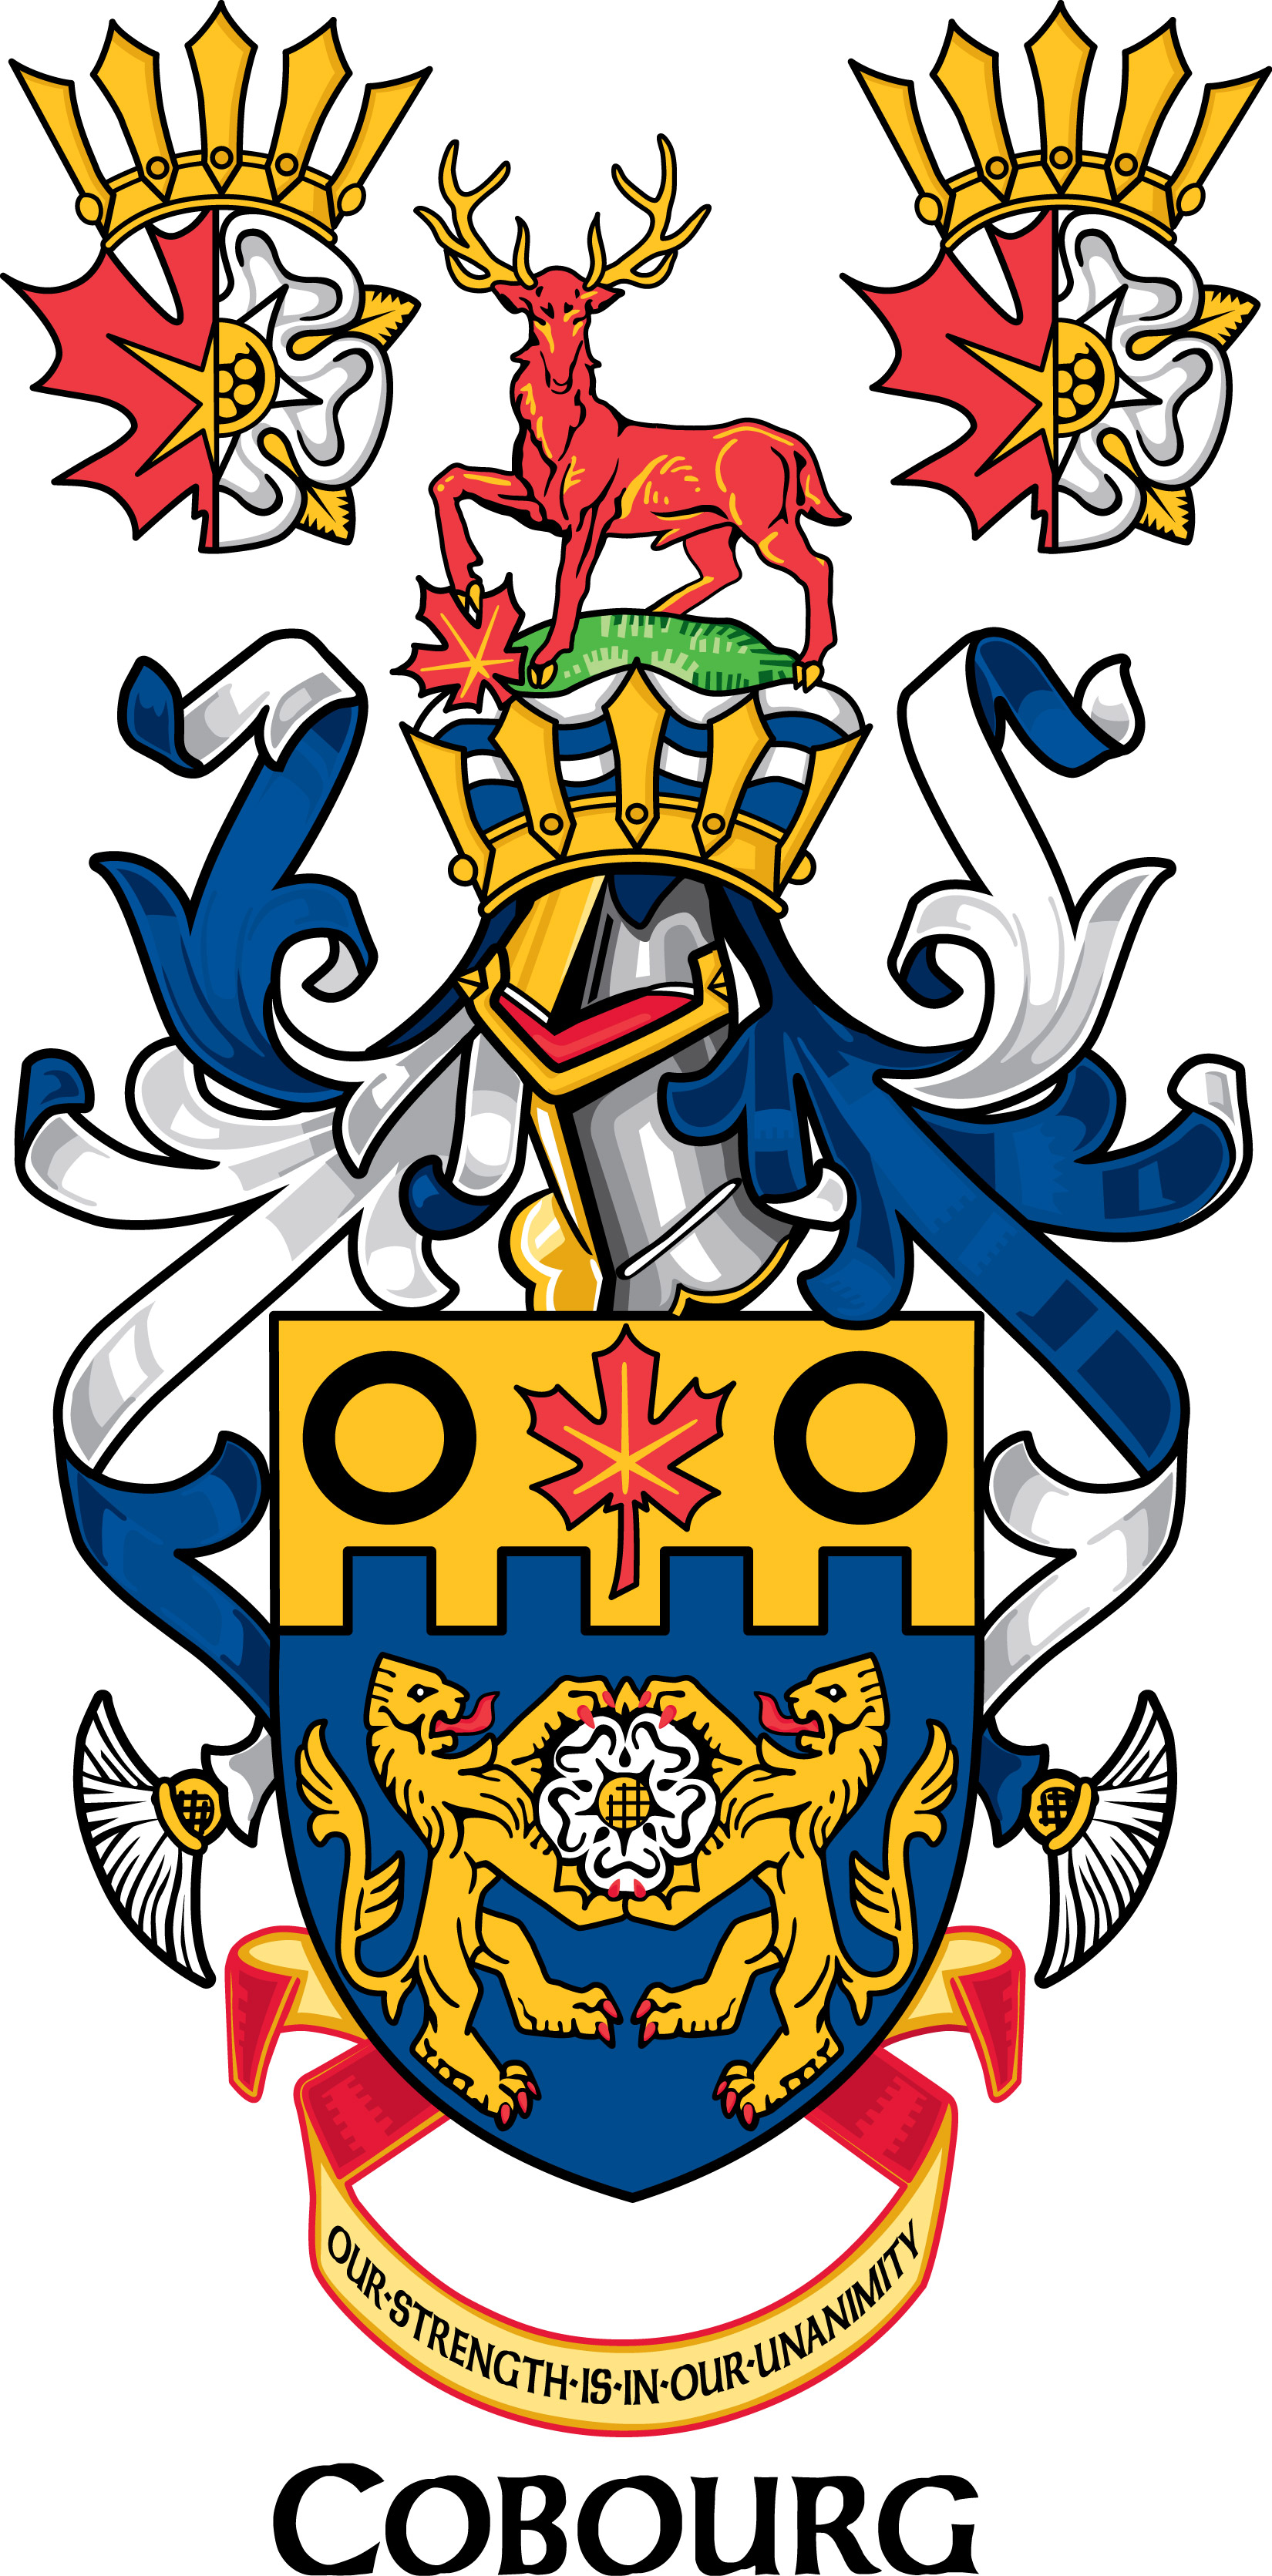 Cobourg_CoatofArms_HR